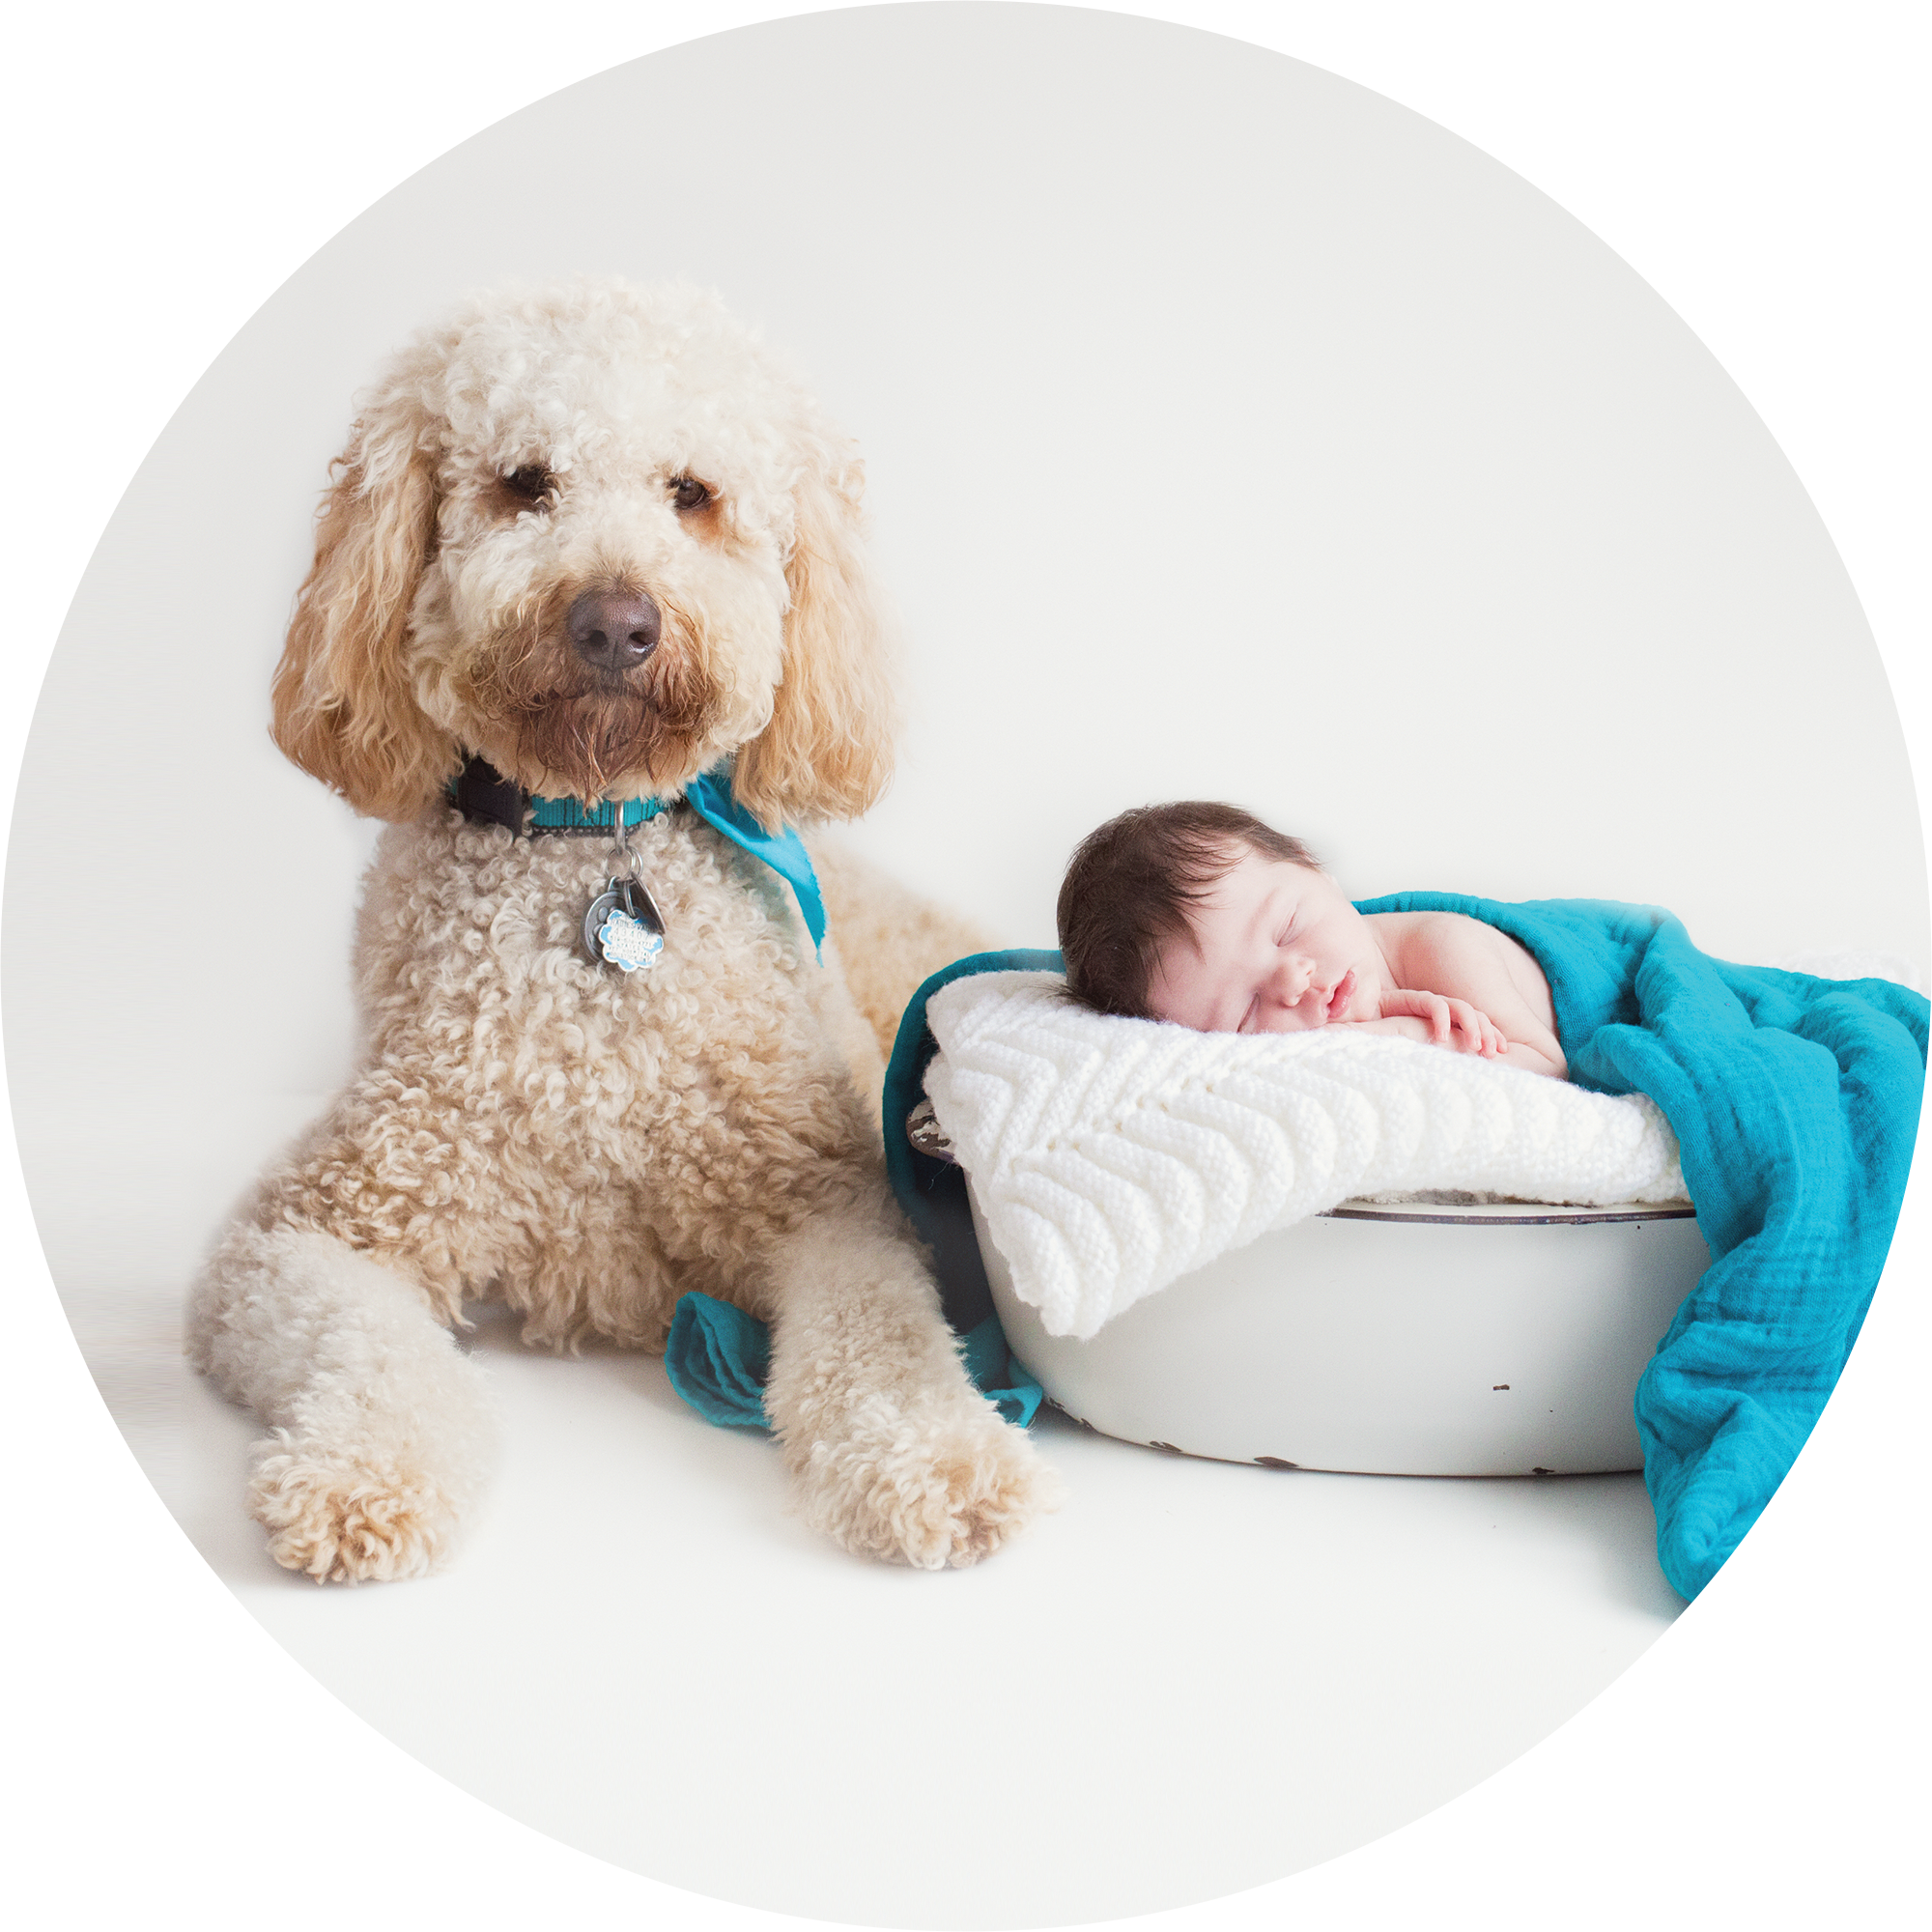 Newborn Baby girl with her goldendoodle dog. Taken by Rachael Little at Rachael Little Photography in Woodstock.